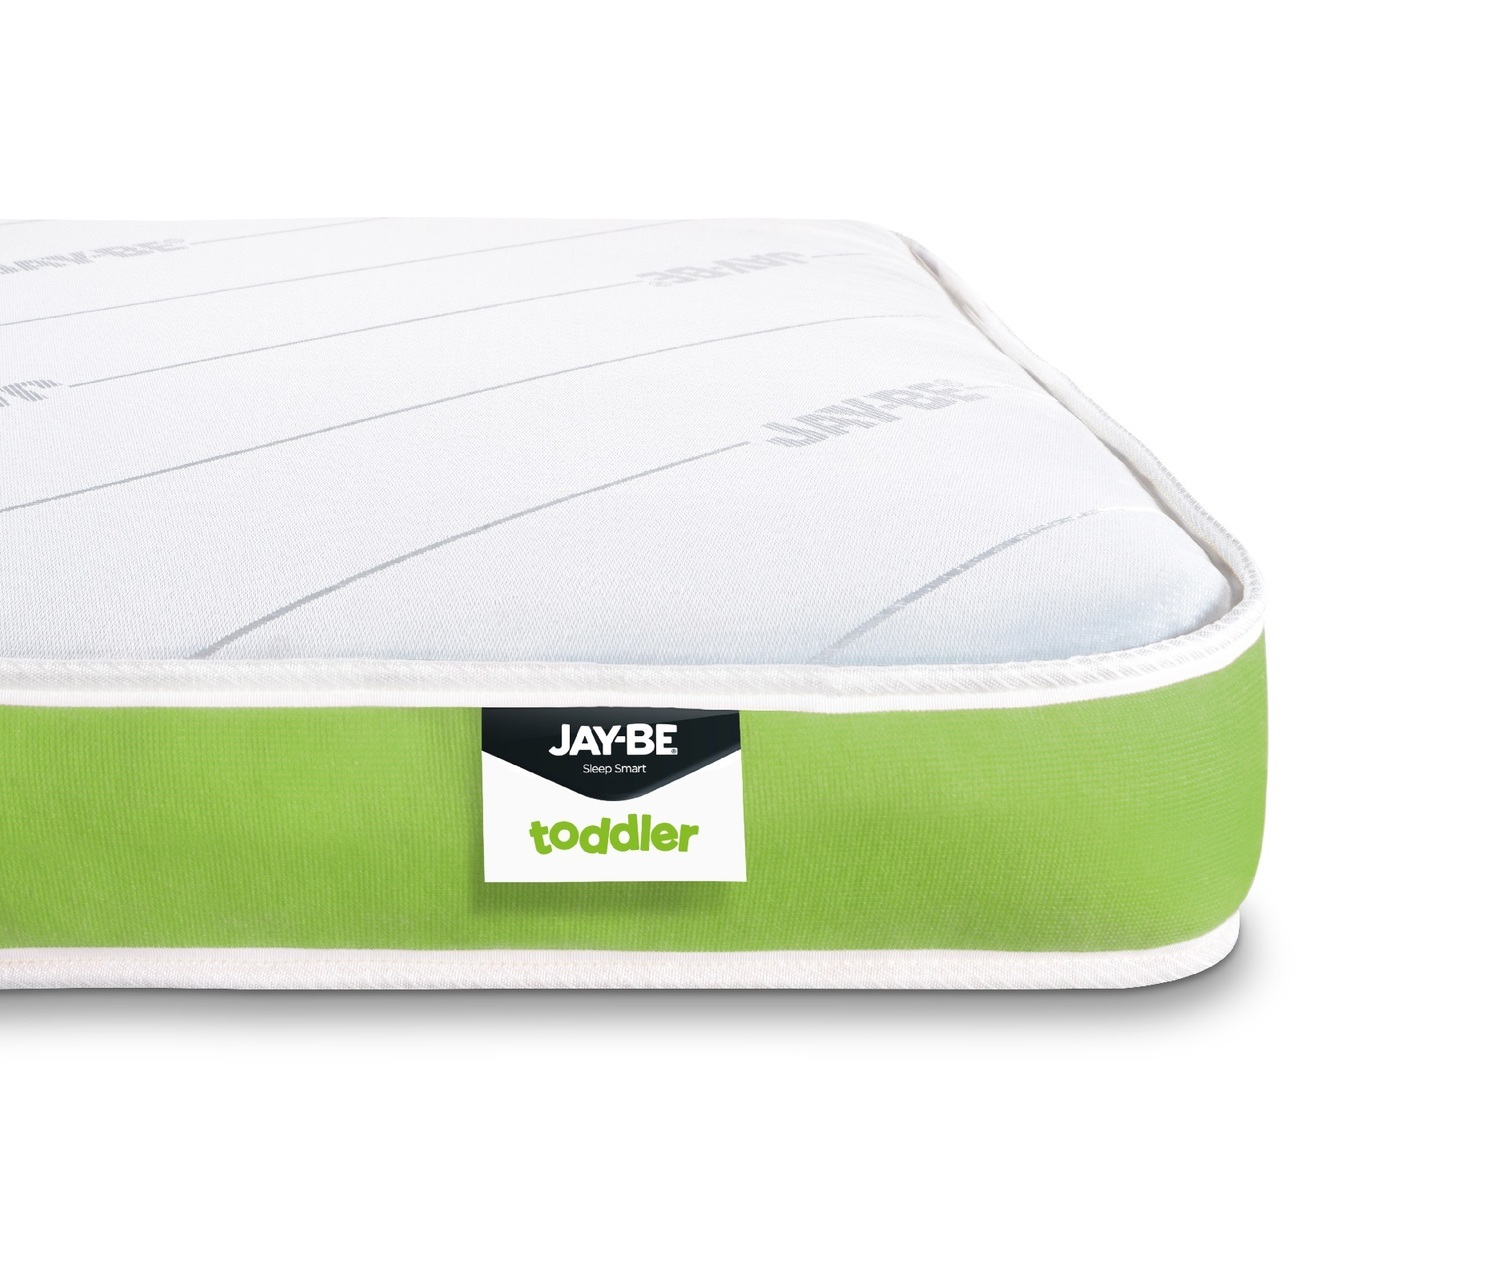 Jay-Be Toddler Anti-Allergy Mattress